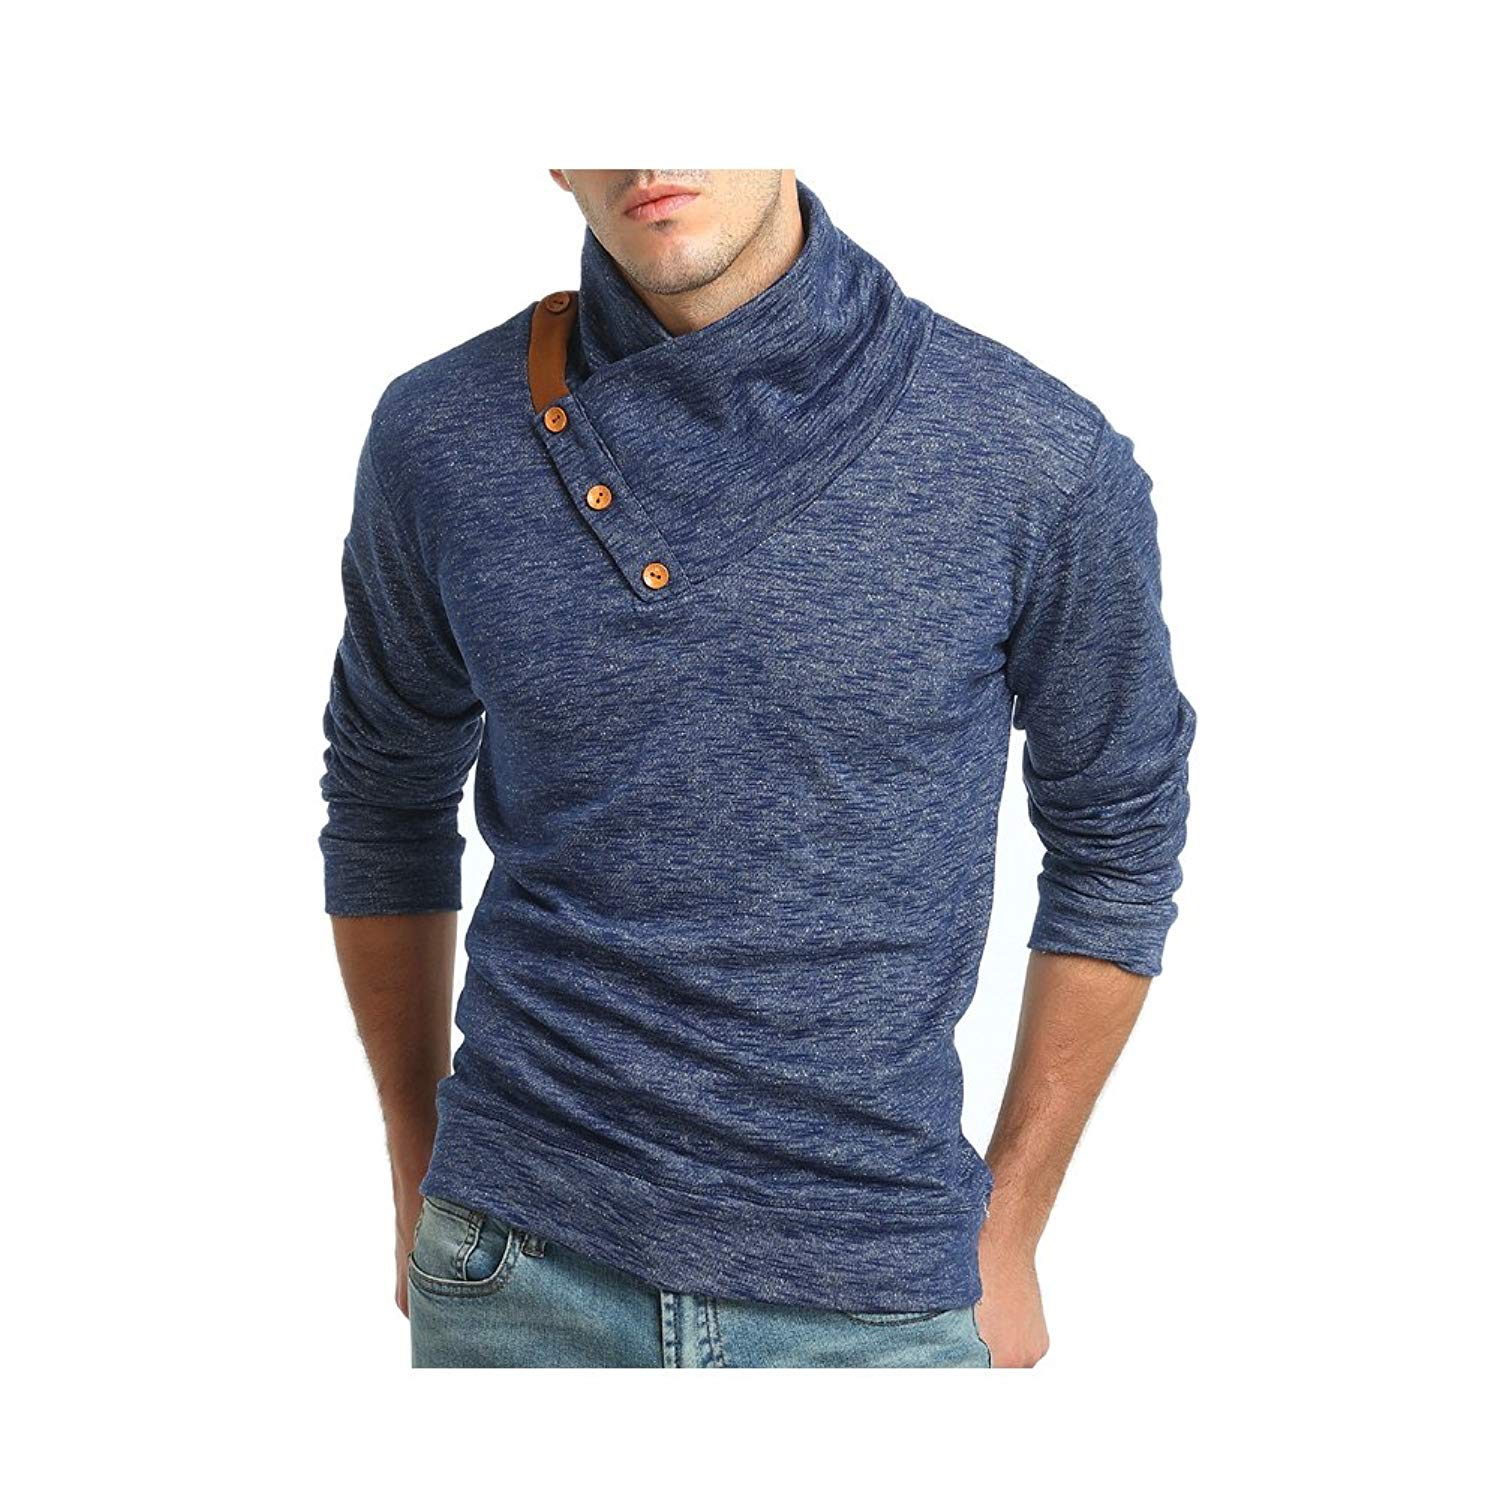 Shining4U Fashion Mens Casual Embroidery Knit Slim Stretch Soft Pullover Sweater